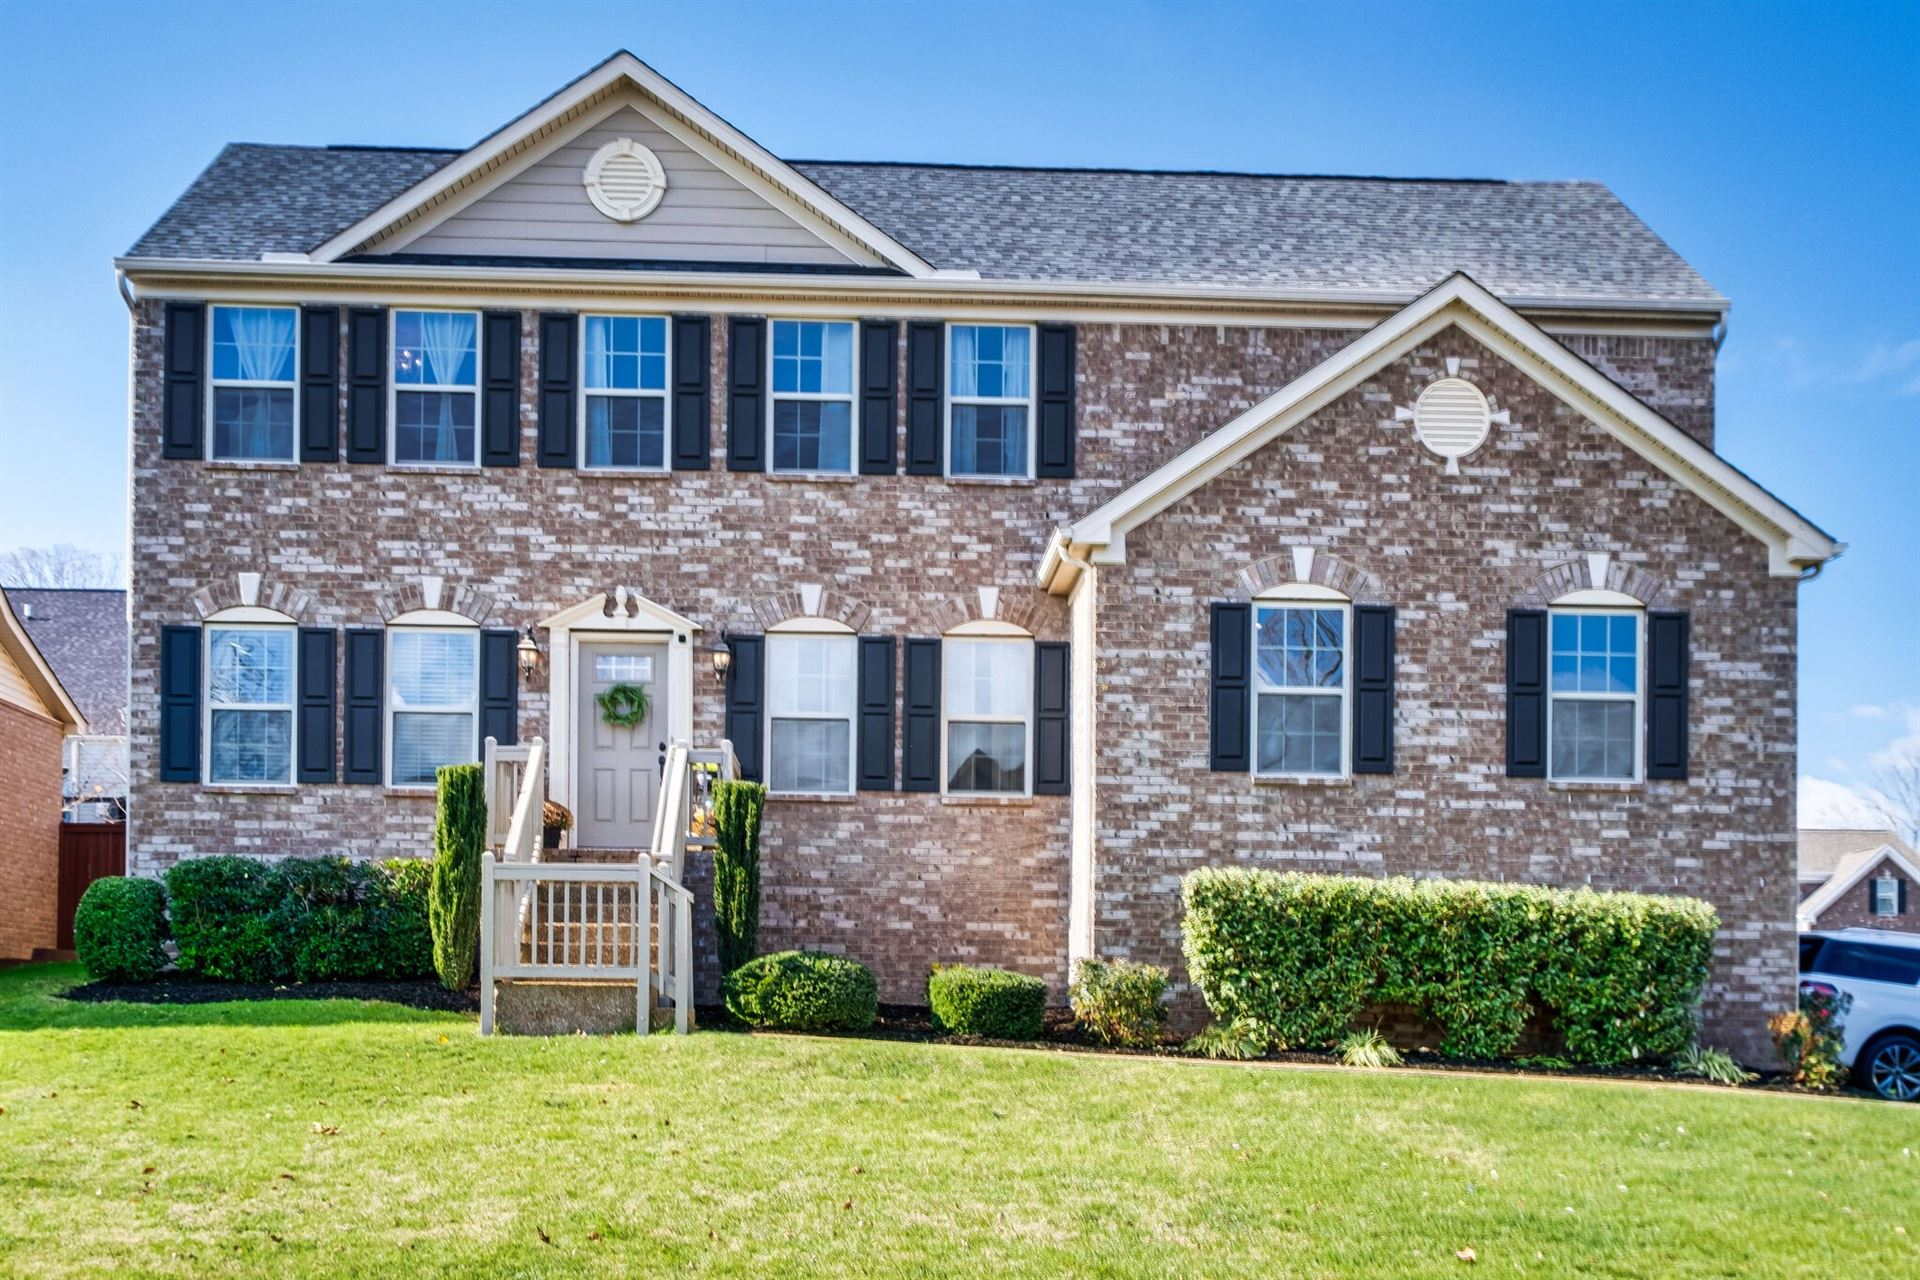 610 Stonebridge Ln, Mount Juliet, TN 37122 - MLS#: 2209334